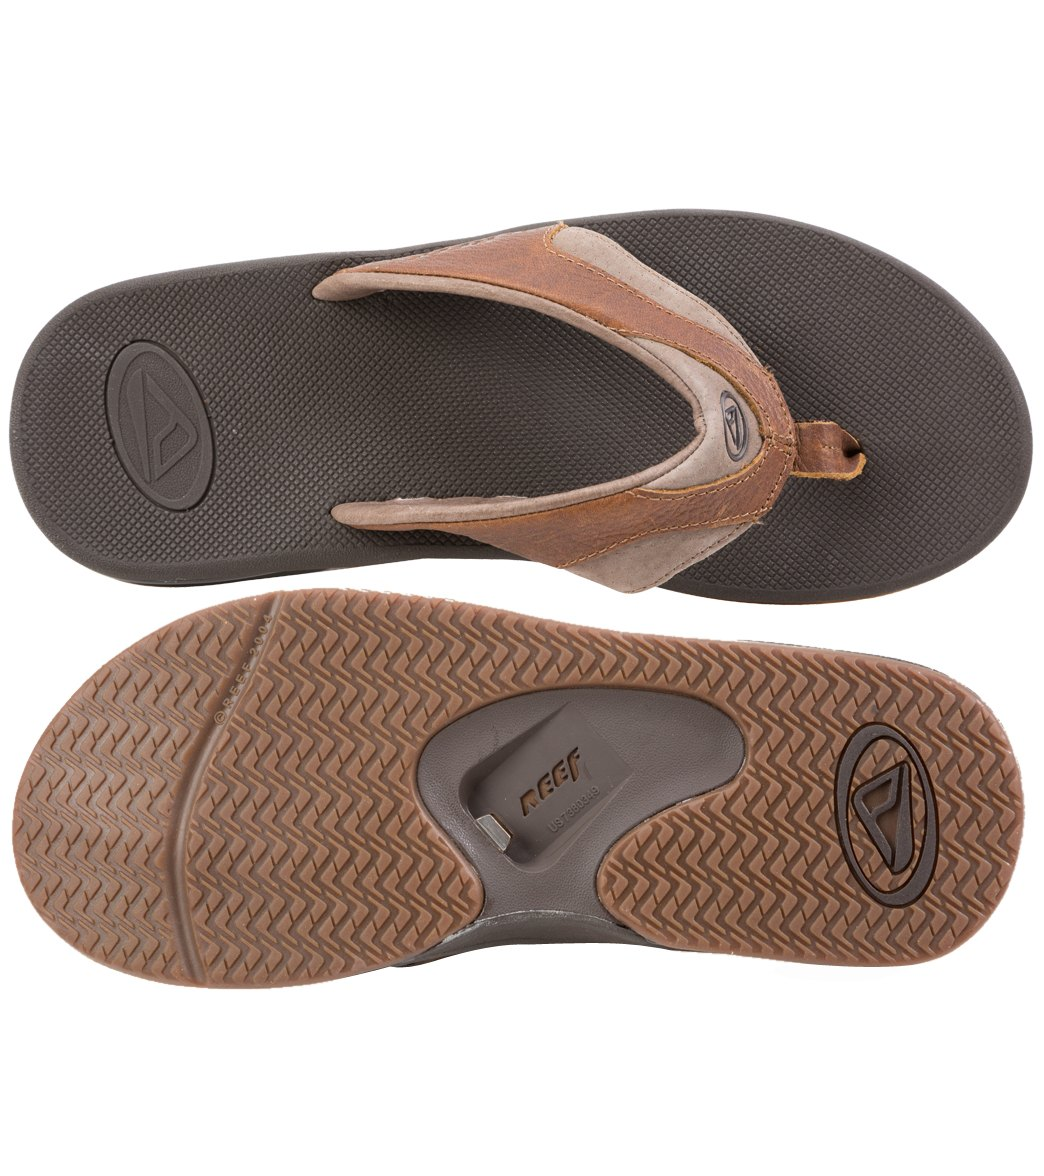 3480fcdab6ae Reef Men s Leather Fanning Flip Flop at SwimOutlet.com - Free Shipping